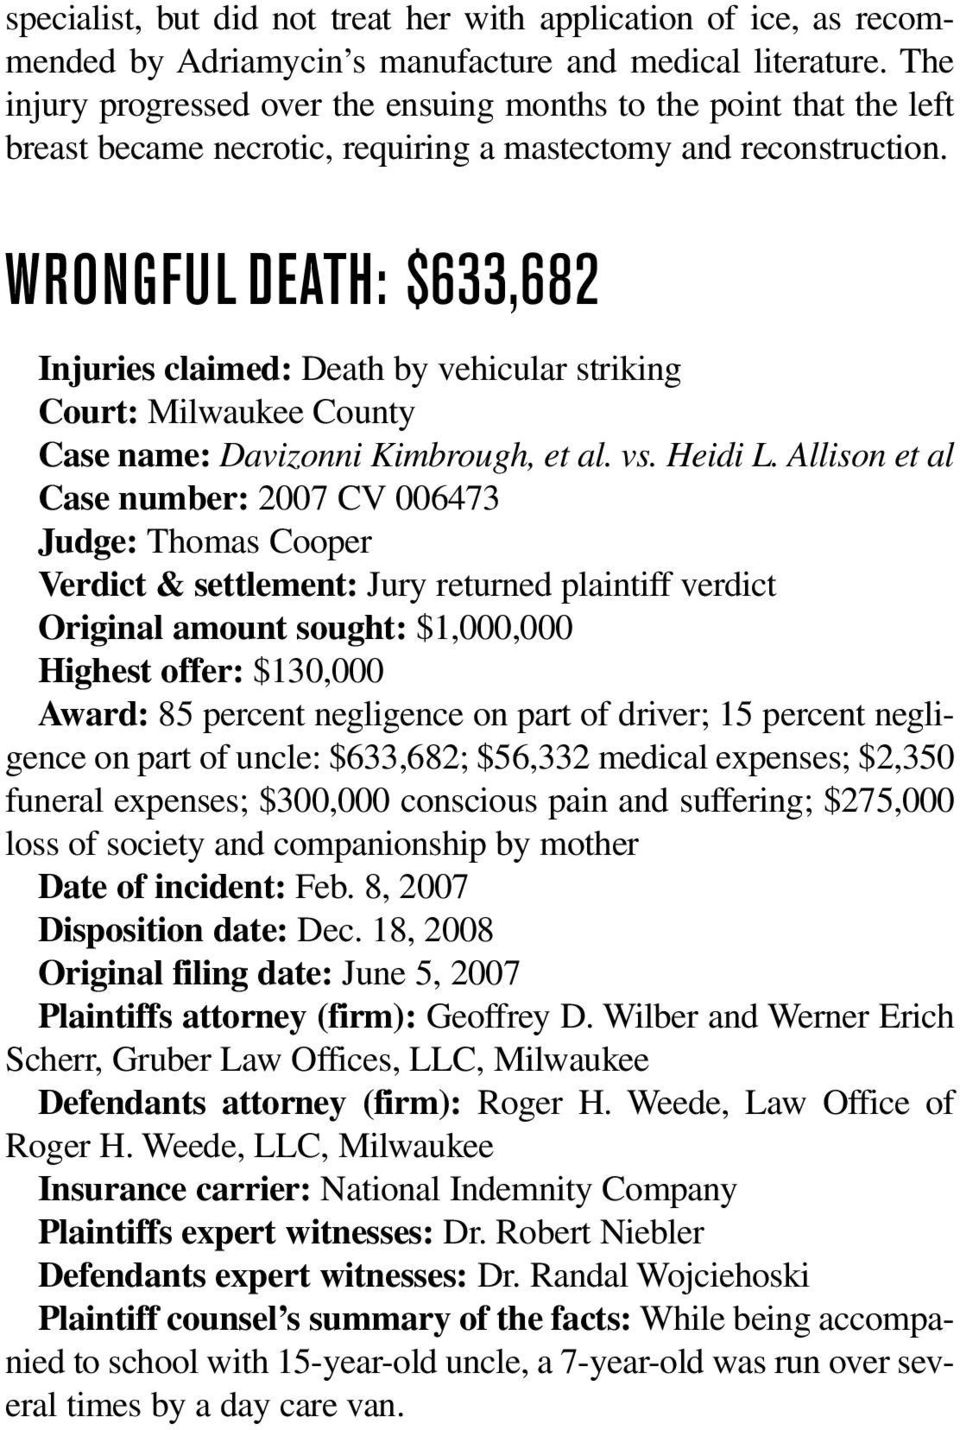 WRONGFUL DEATH: $633,682 Injuries claimed: Death by vehicular striking Court: Milwaukee County Case name: Davizonni Kimbrough, et al. vs. Heidi L.